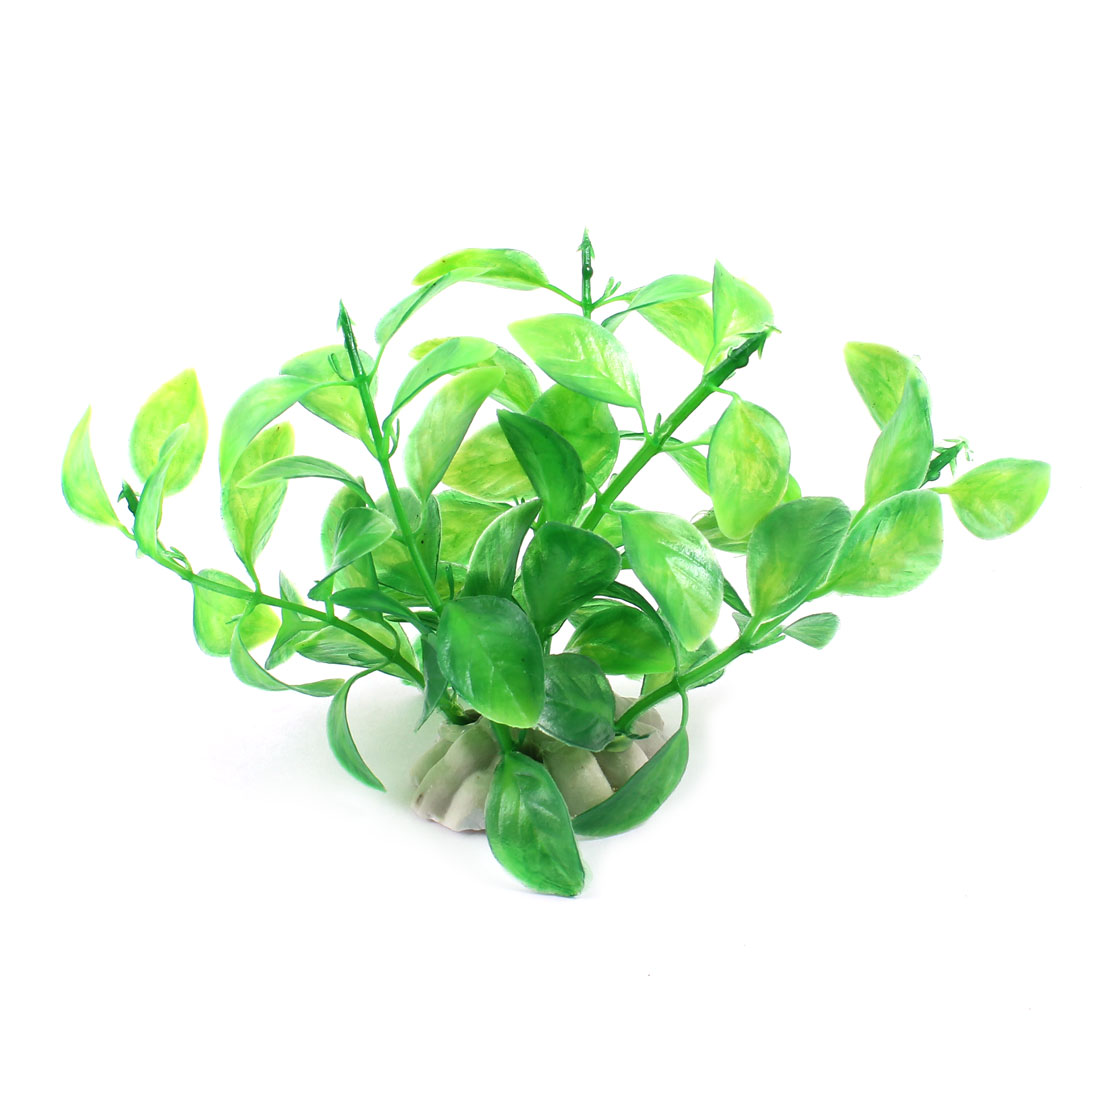 "Aquarium Ornament Simulation Green Plastic Grass Plant 3.9"" Height 2 Pcs"